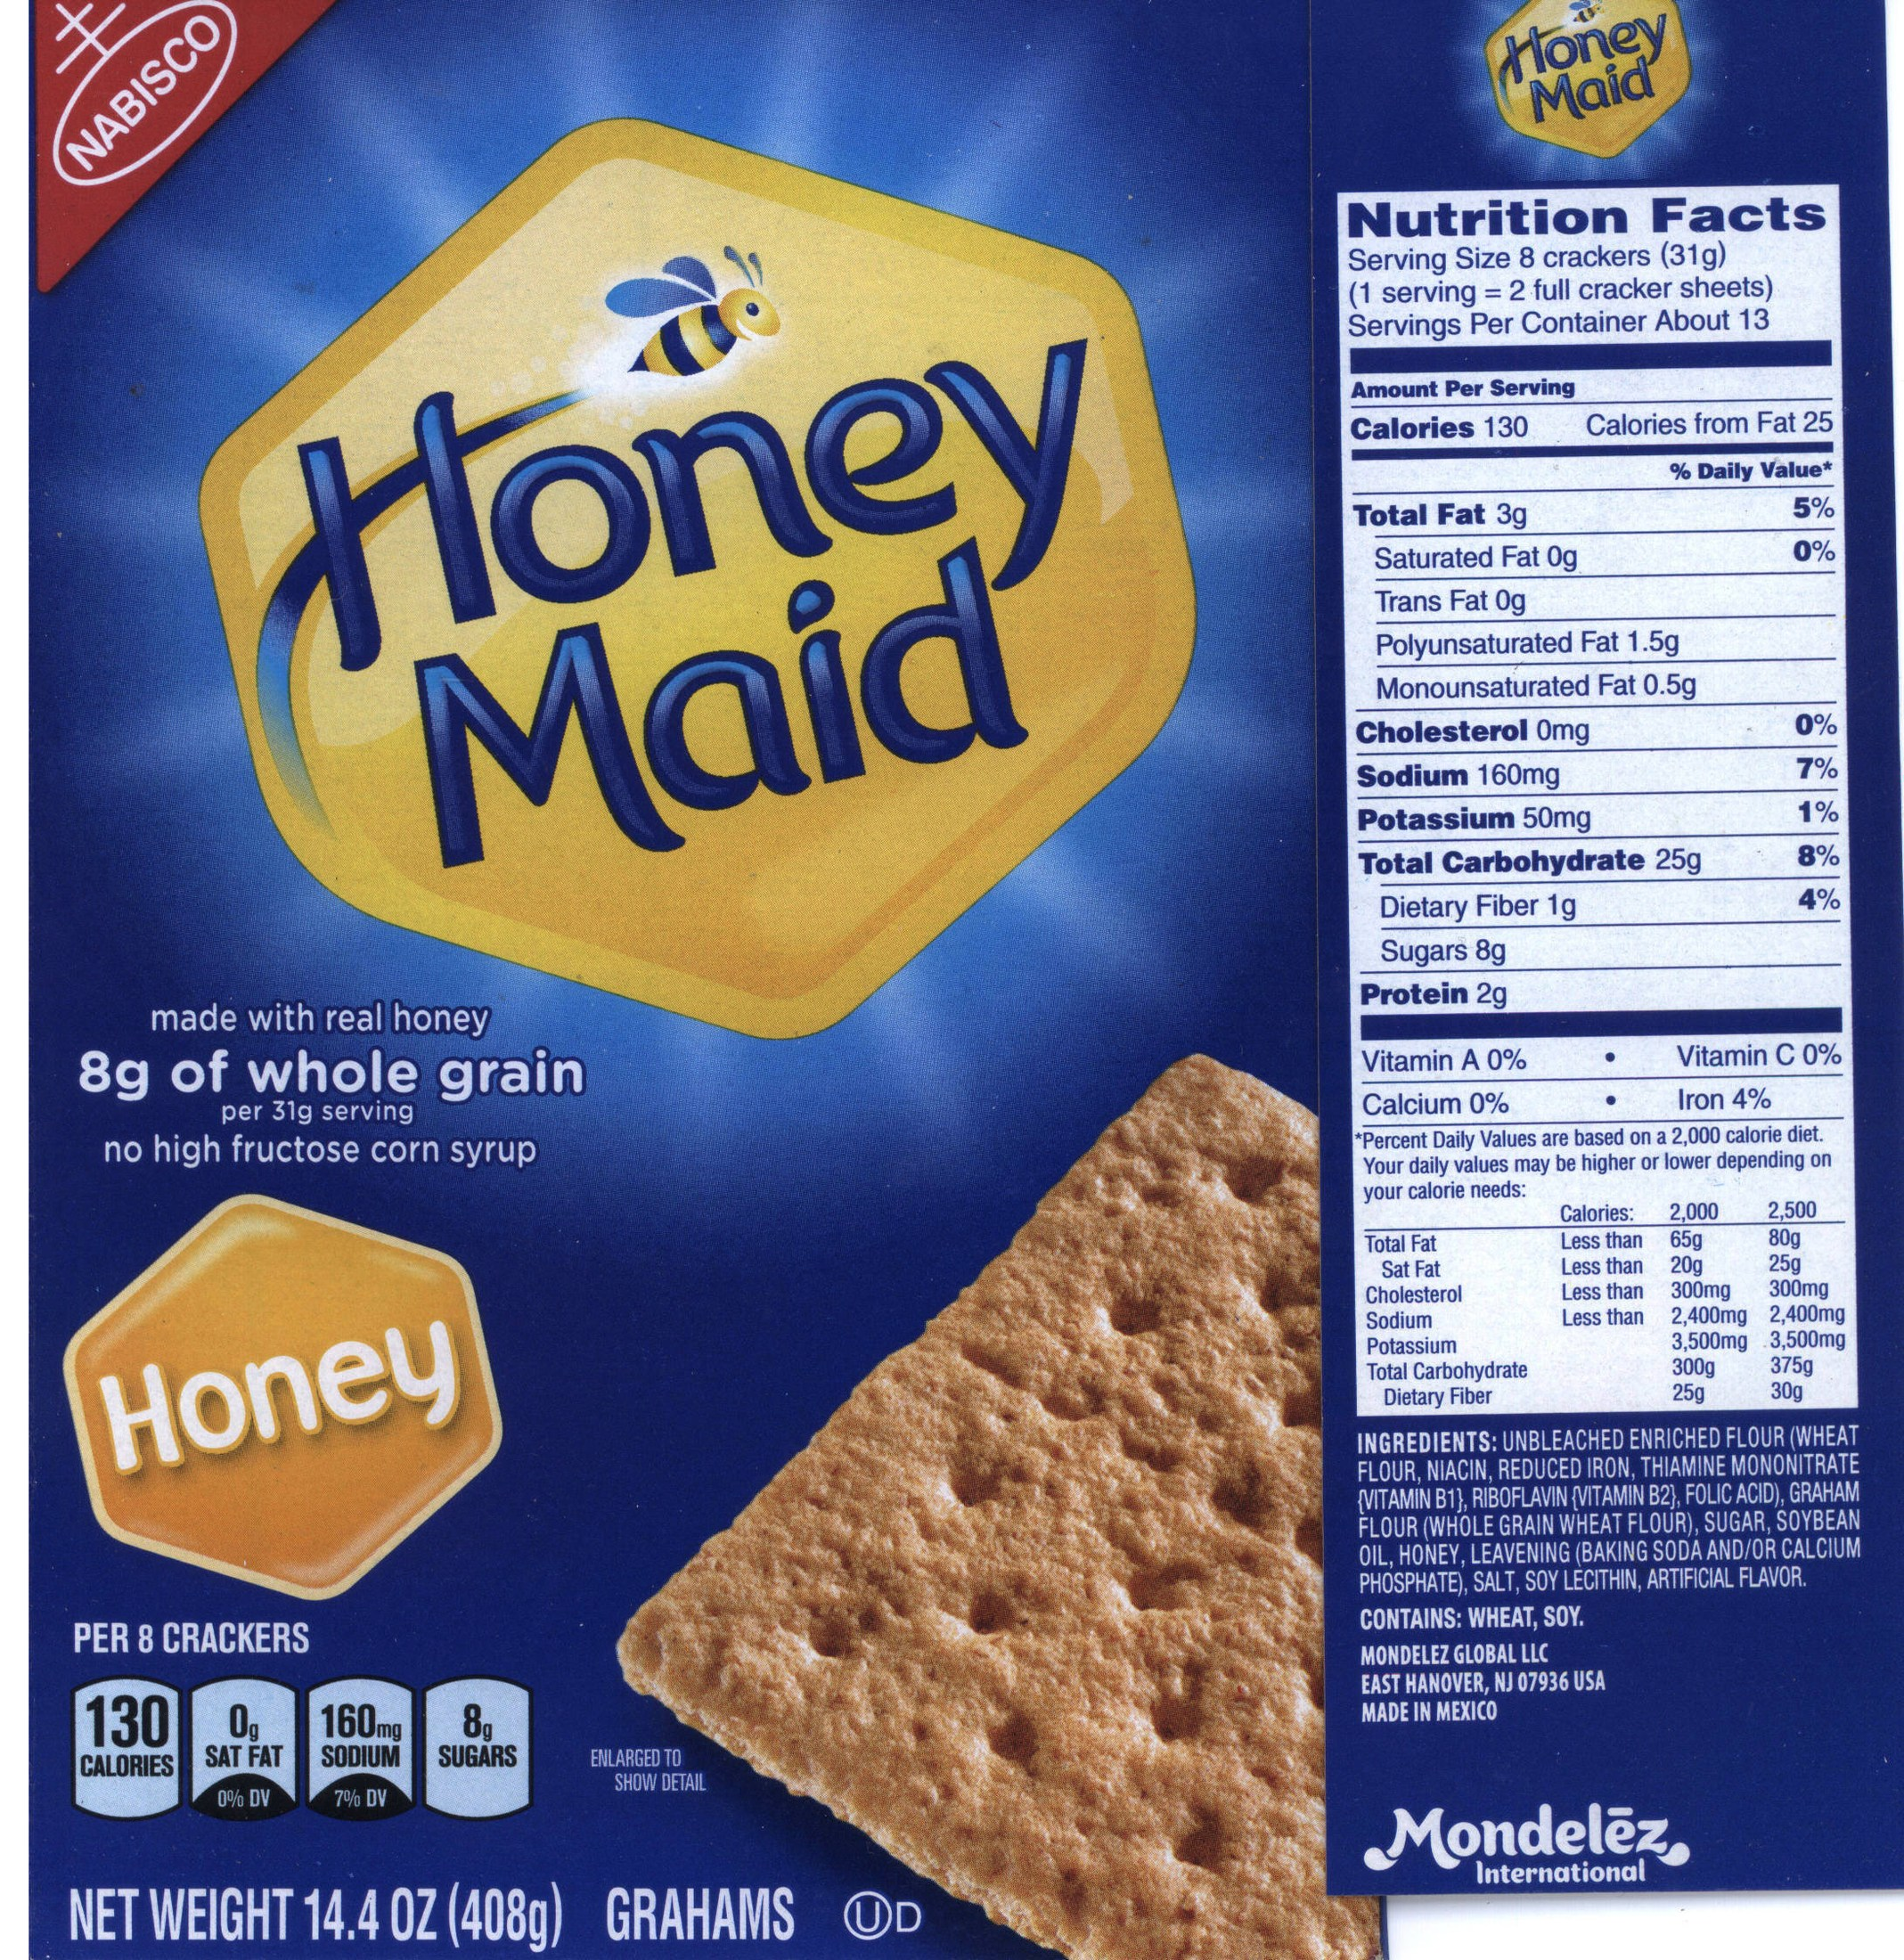 Honey Maid Nutritional info